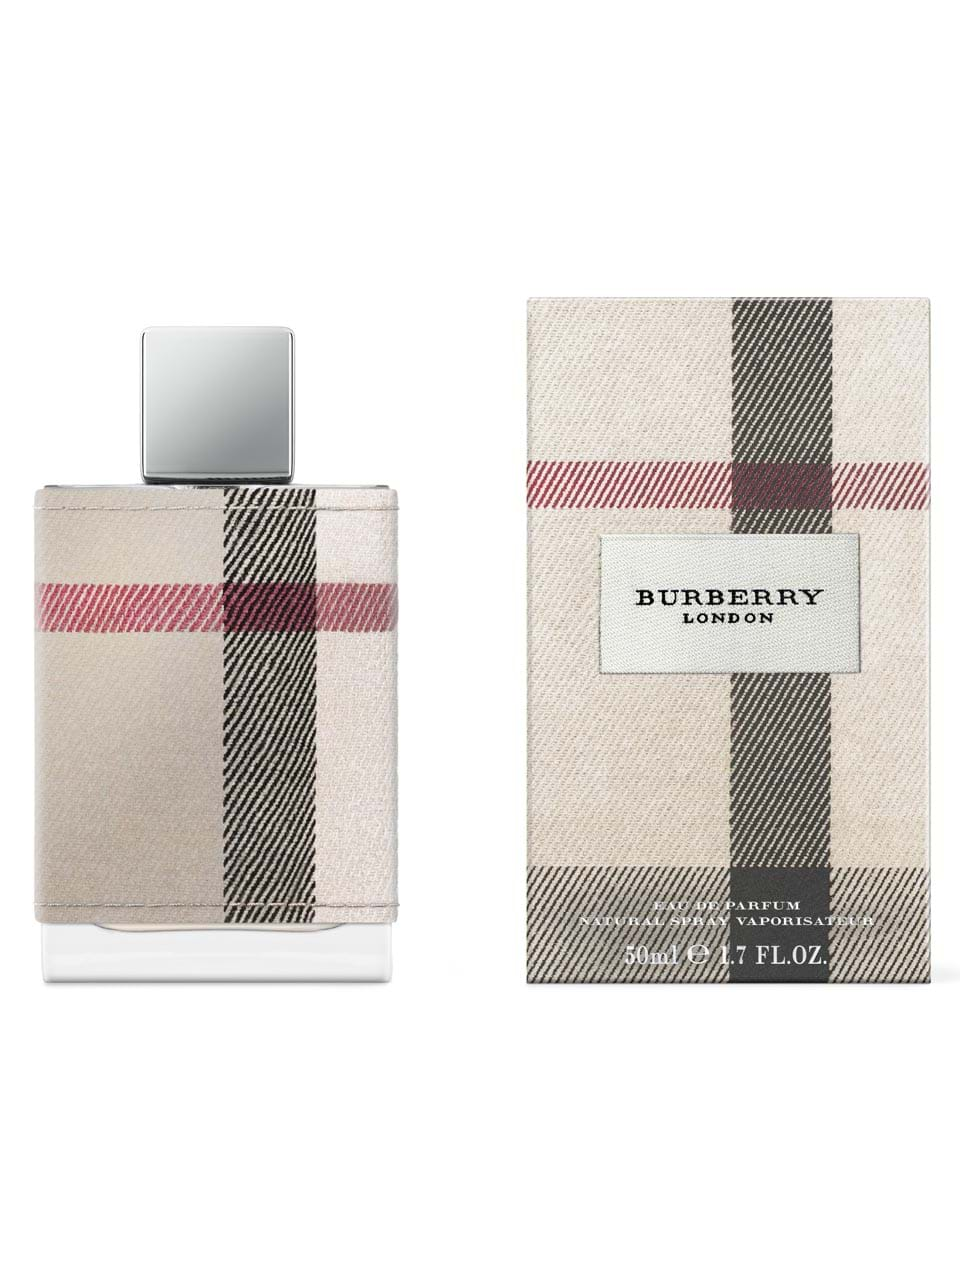 Eau Ml 50 De Burberry London Parfum hCdsxBtQro